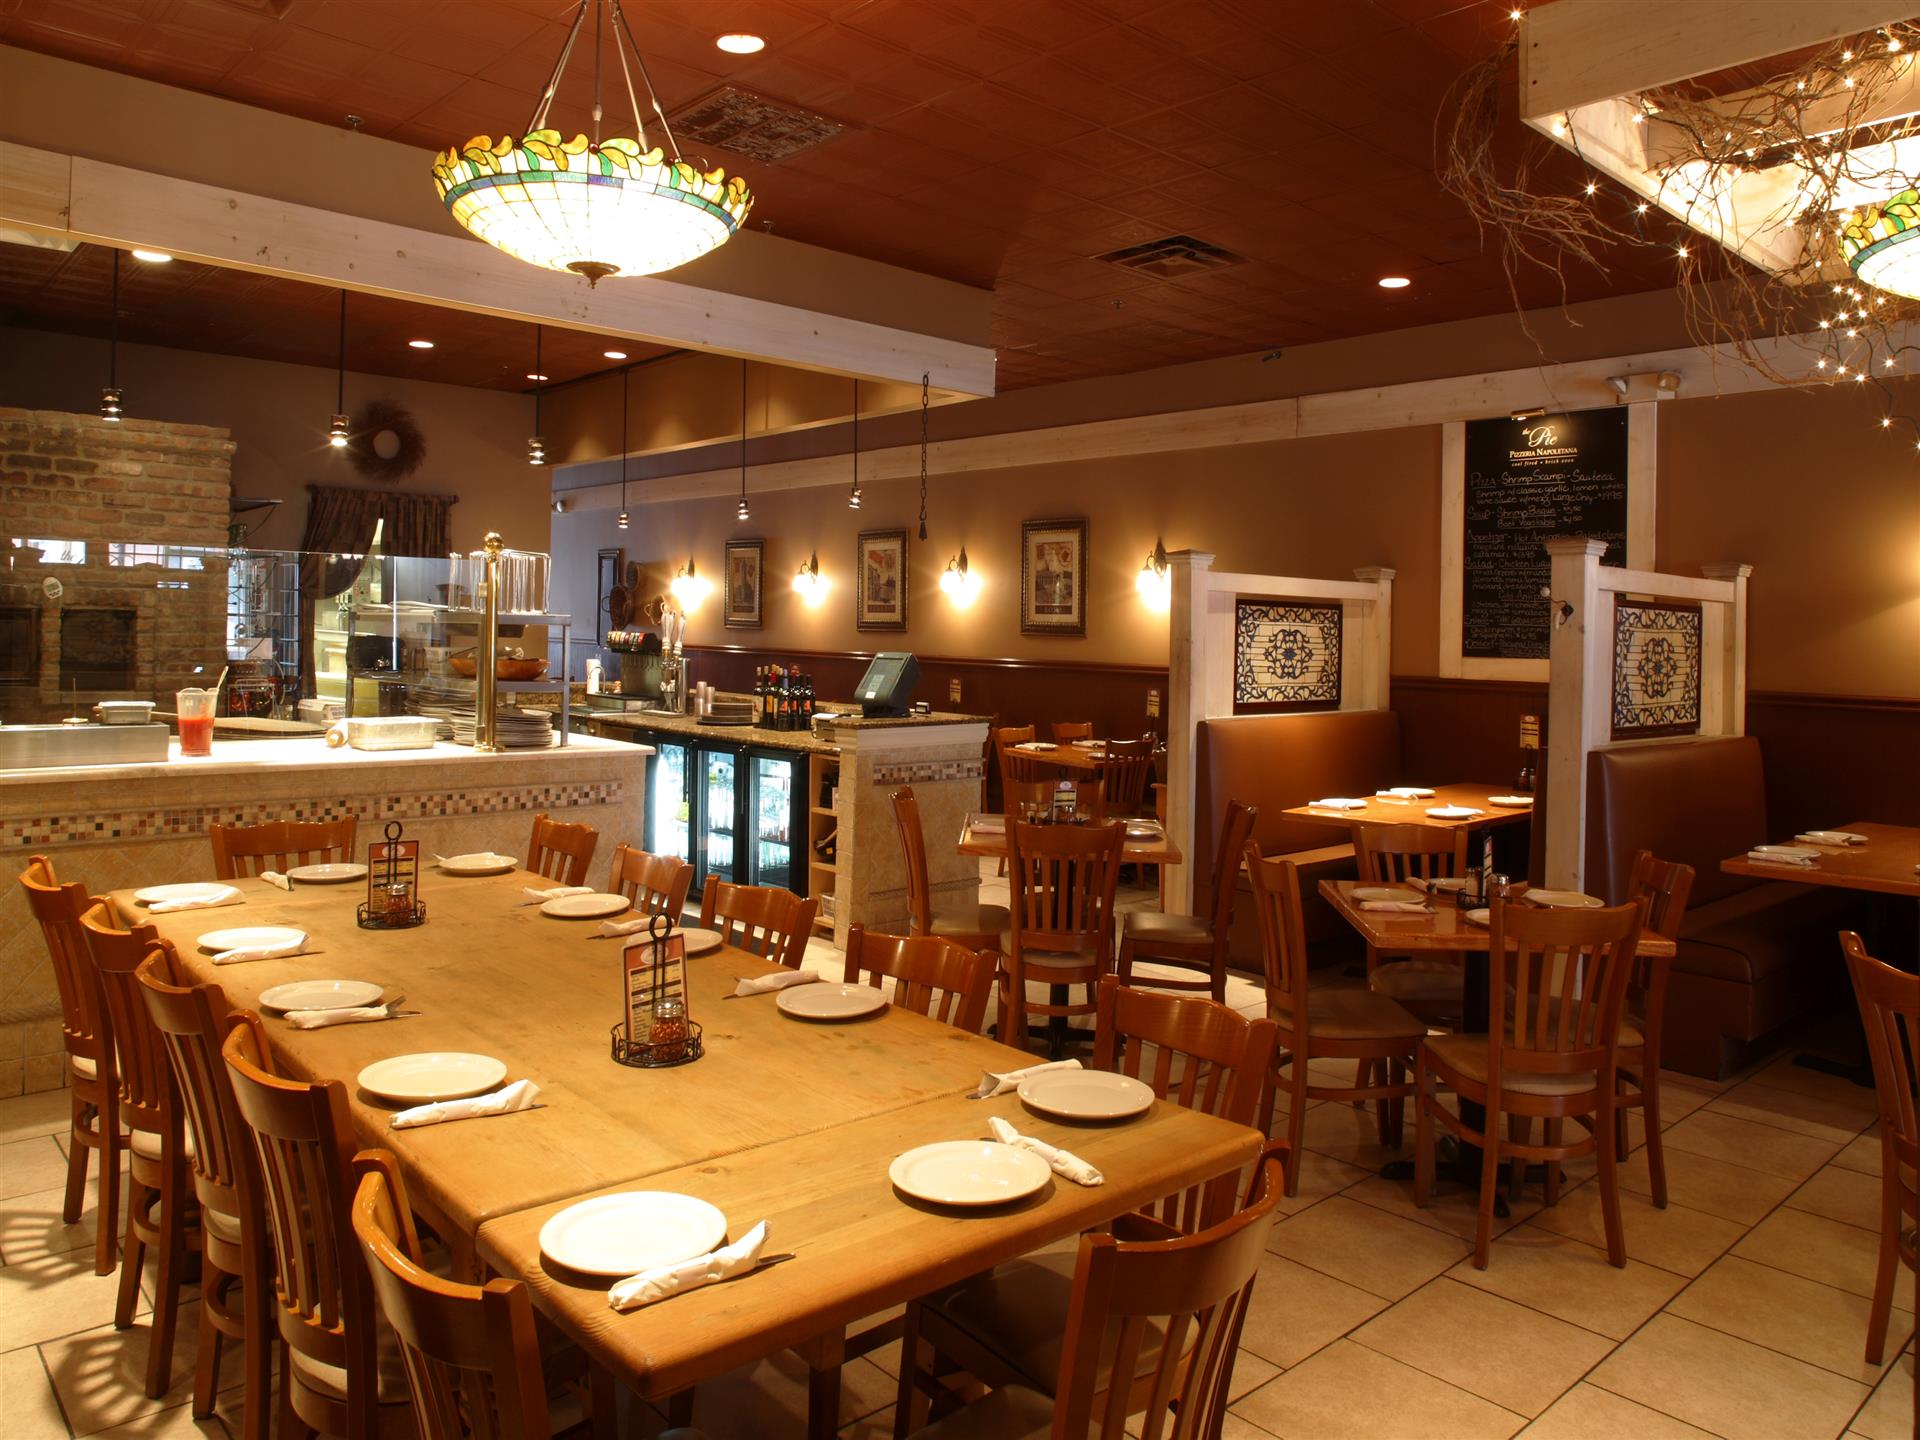 interior of restaurant set with tables and booths for service